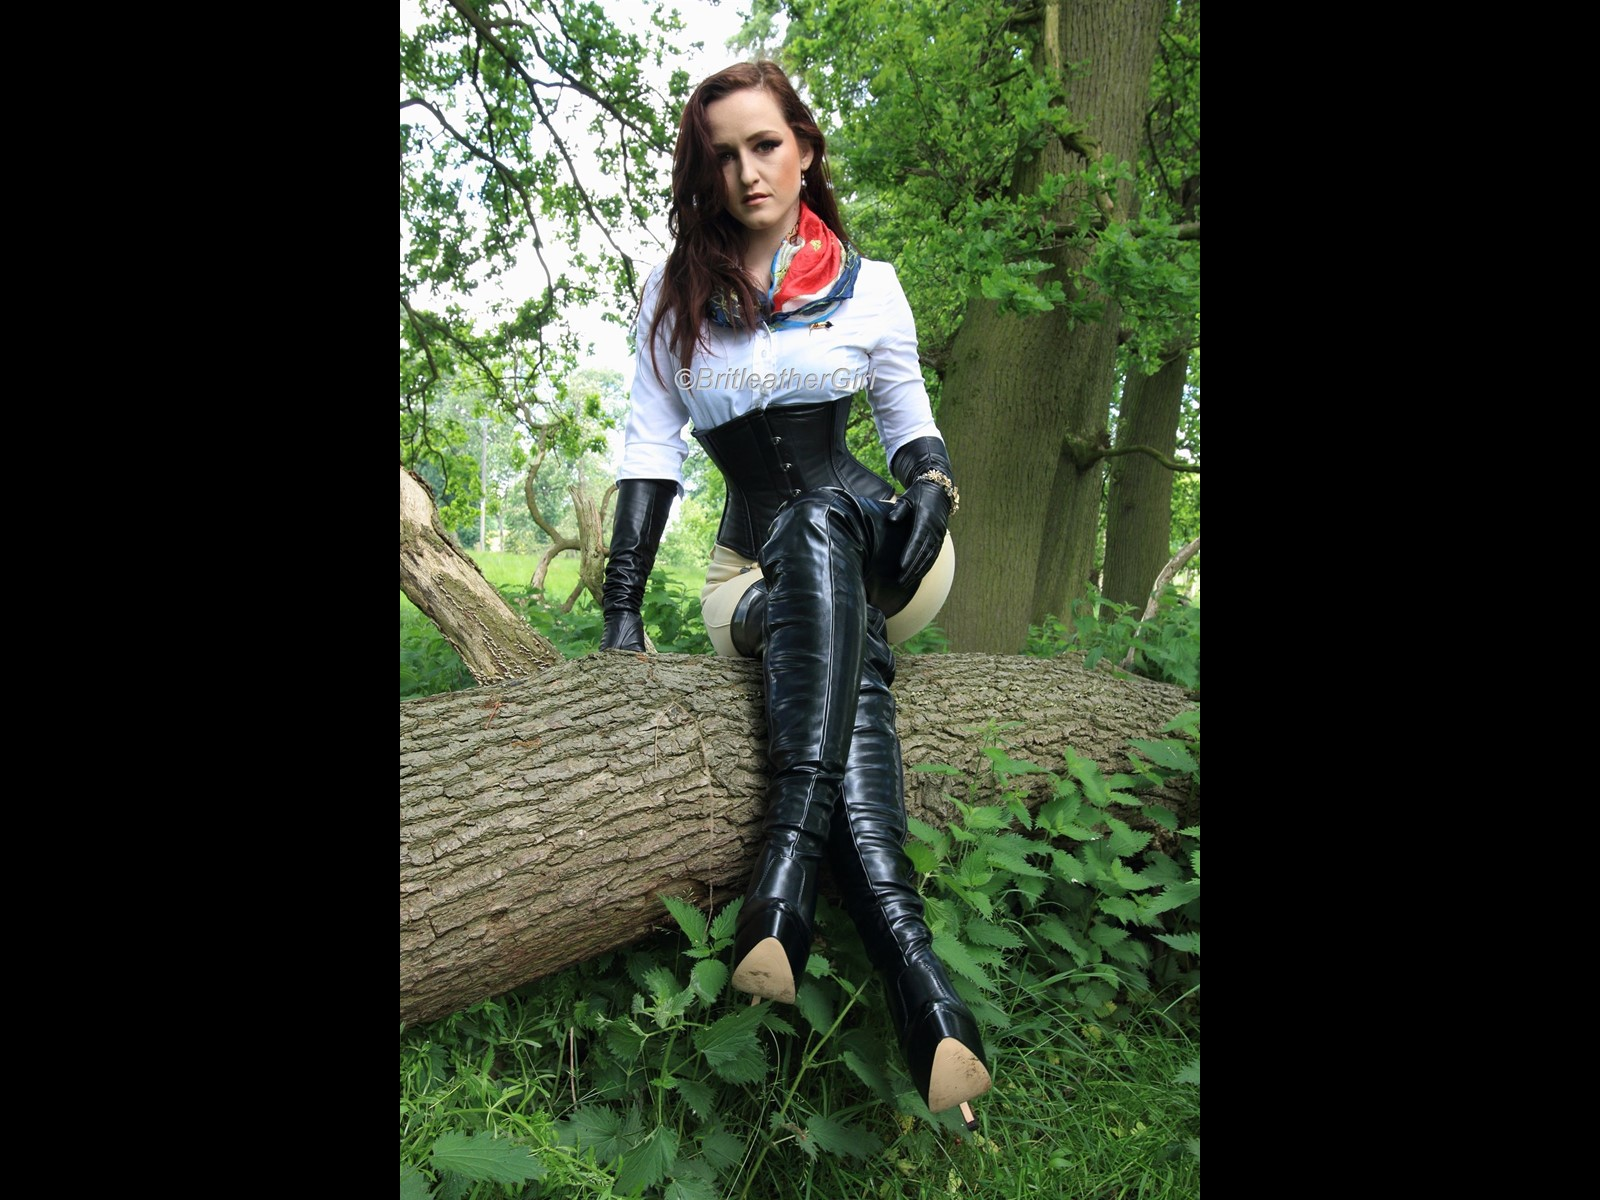 Shooting Outdoors in Leather Gloves and Boots and White Blouse and Jodhpurs for BritLeatherGirl